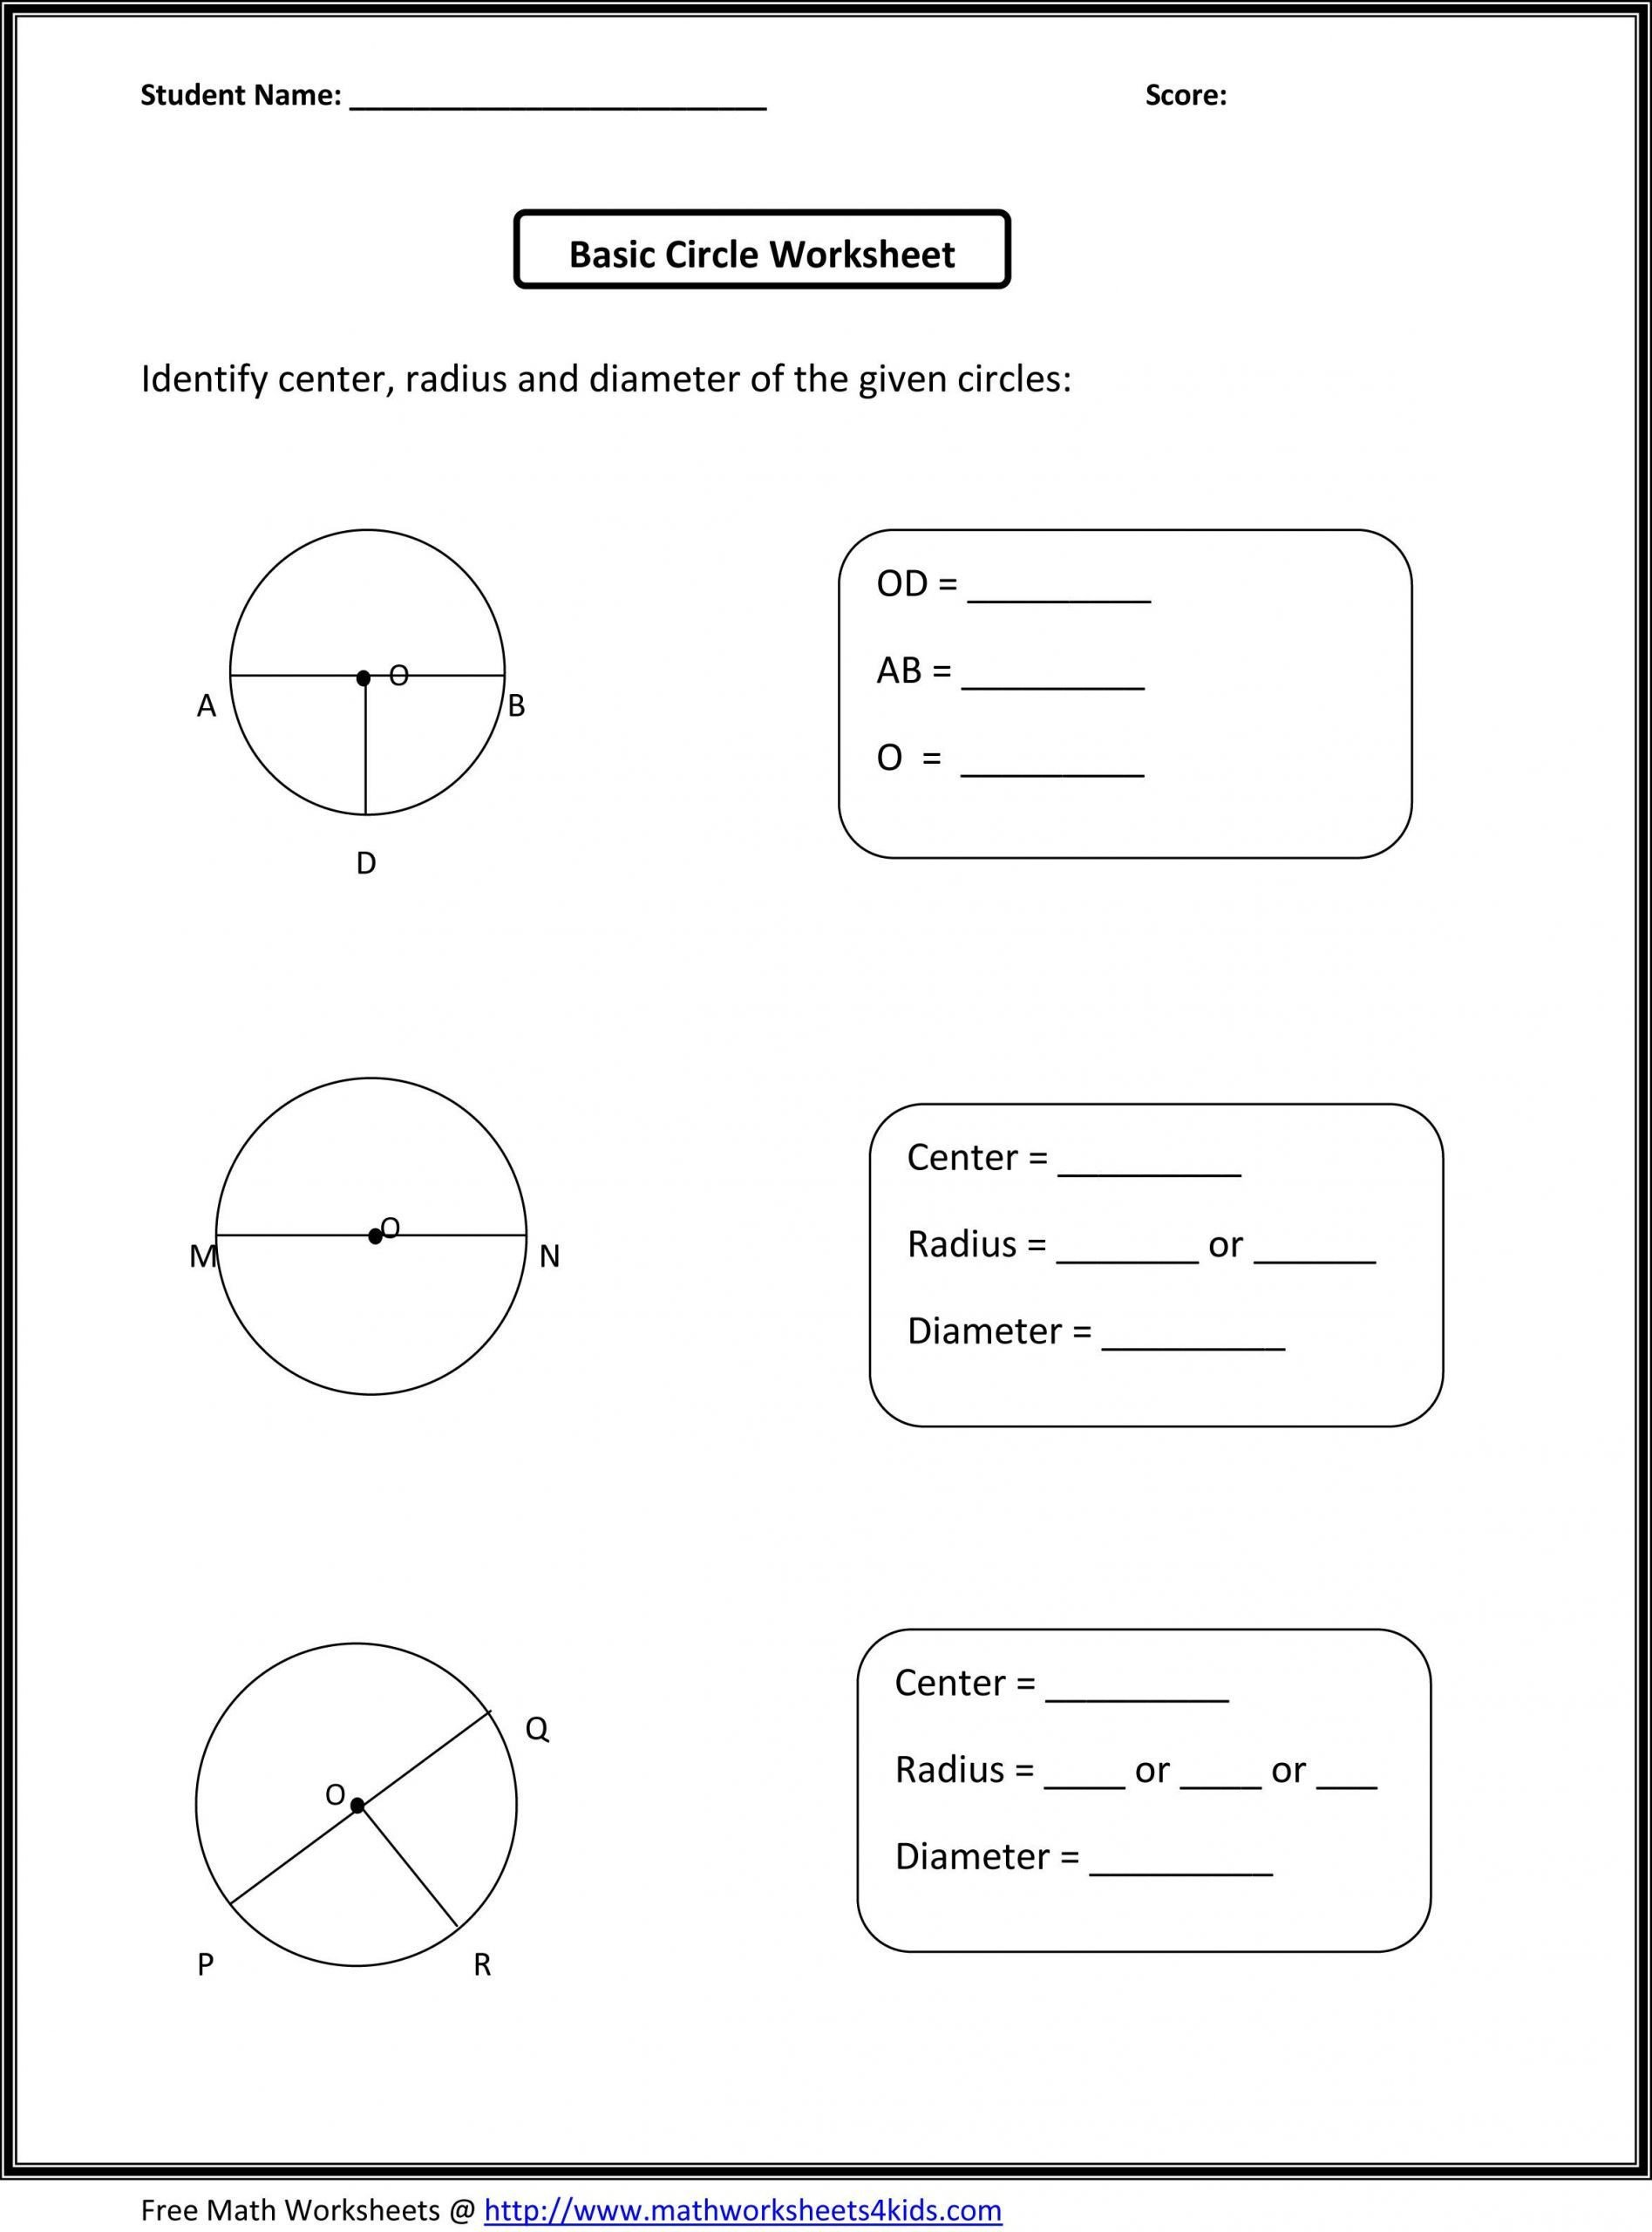 3 Addends Worksheets 2 3 Addends Worksheet Printable In 2020 with Images